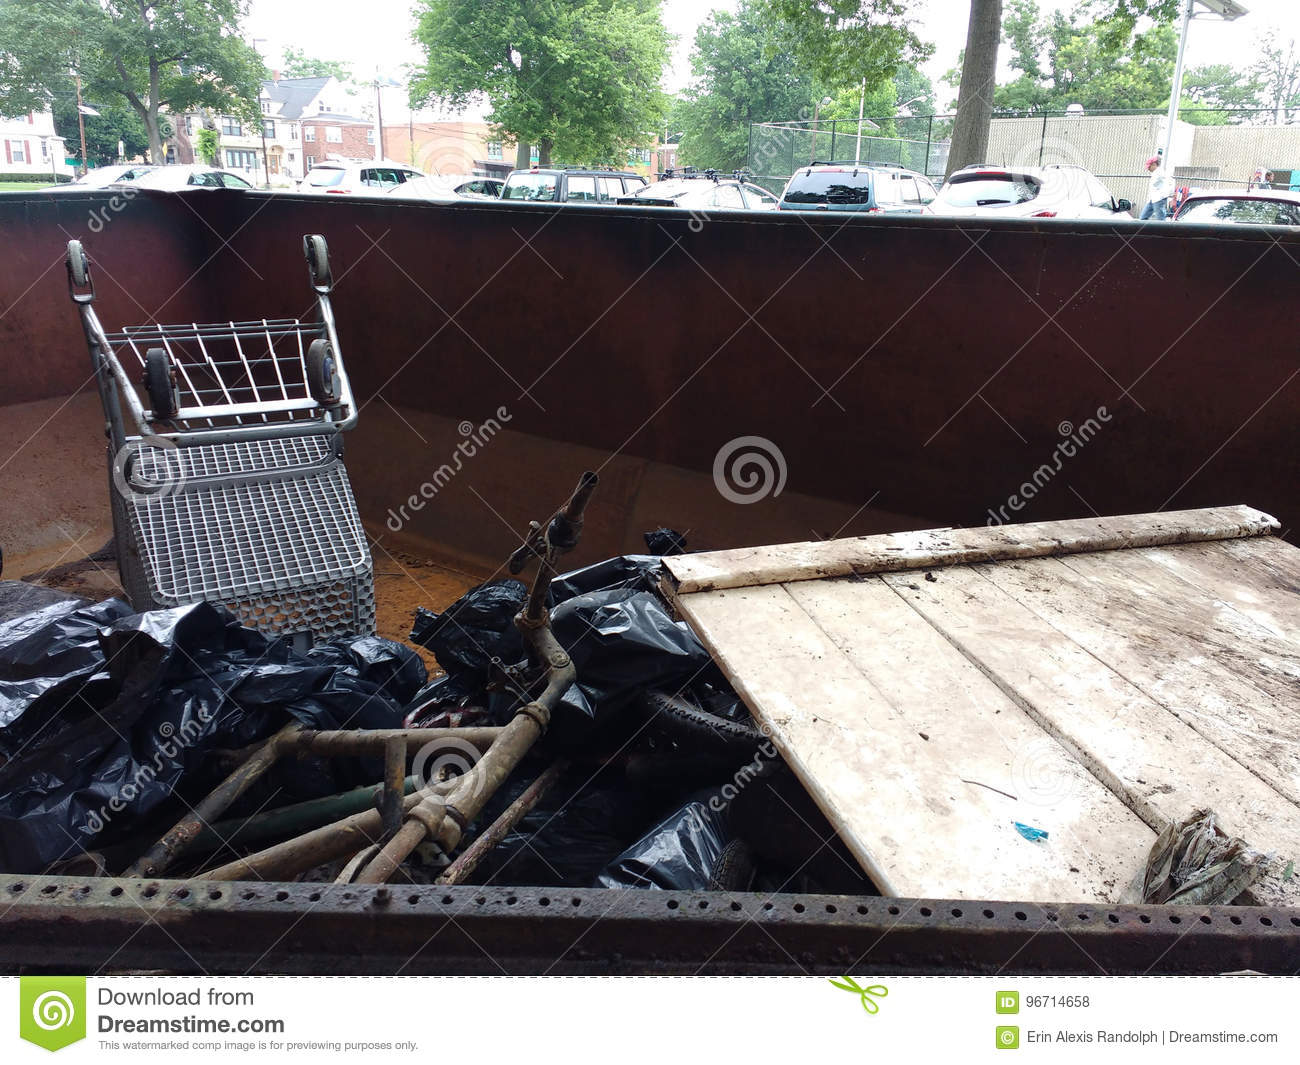 Illegal Dumping, Trash In A Dumpster Collected During A River